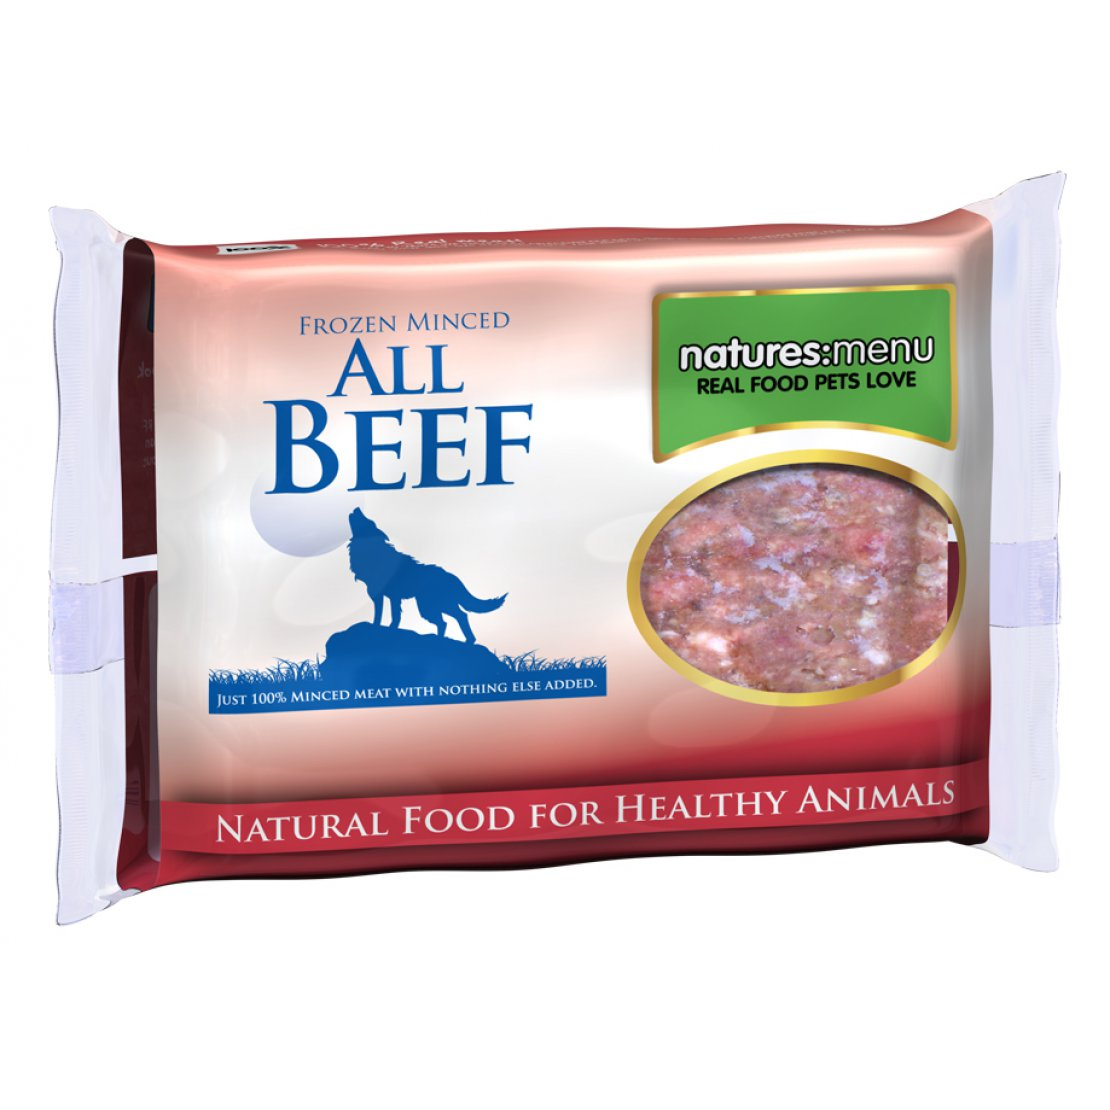 ONLY AVAILABLE FOR LOCAL DELIVERY. Natures Menu Frozen Dog Food. Beef Mince